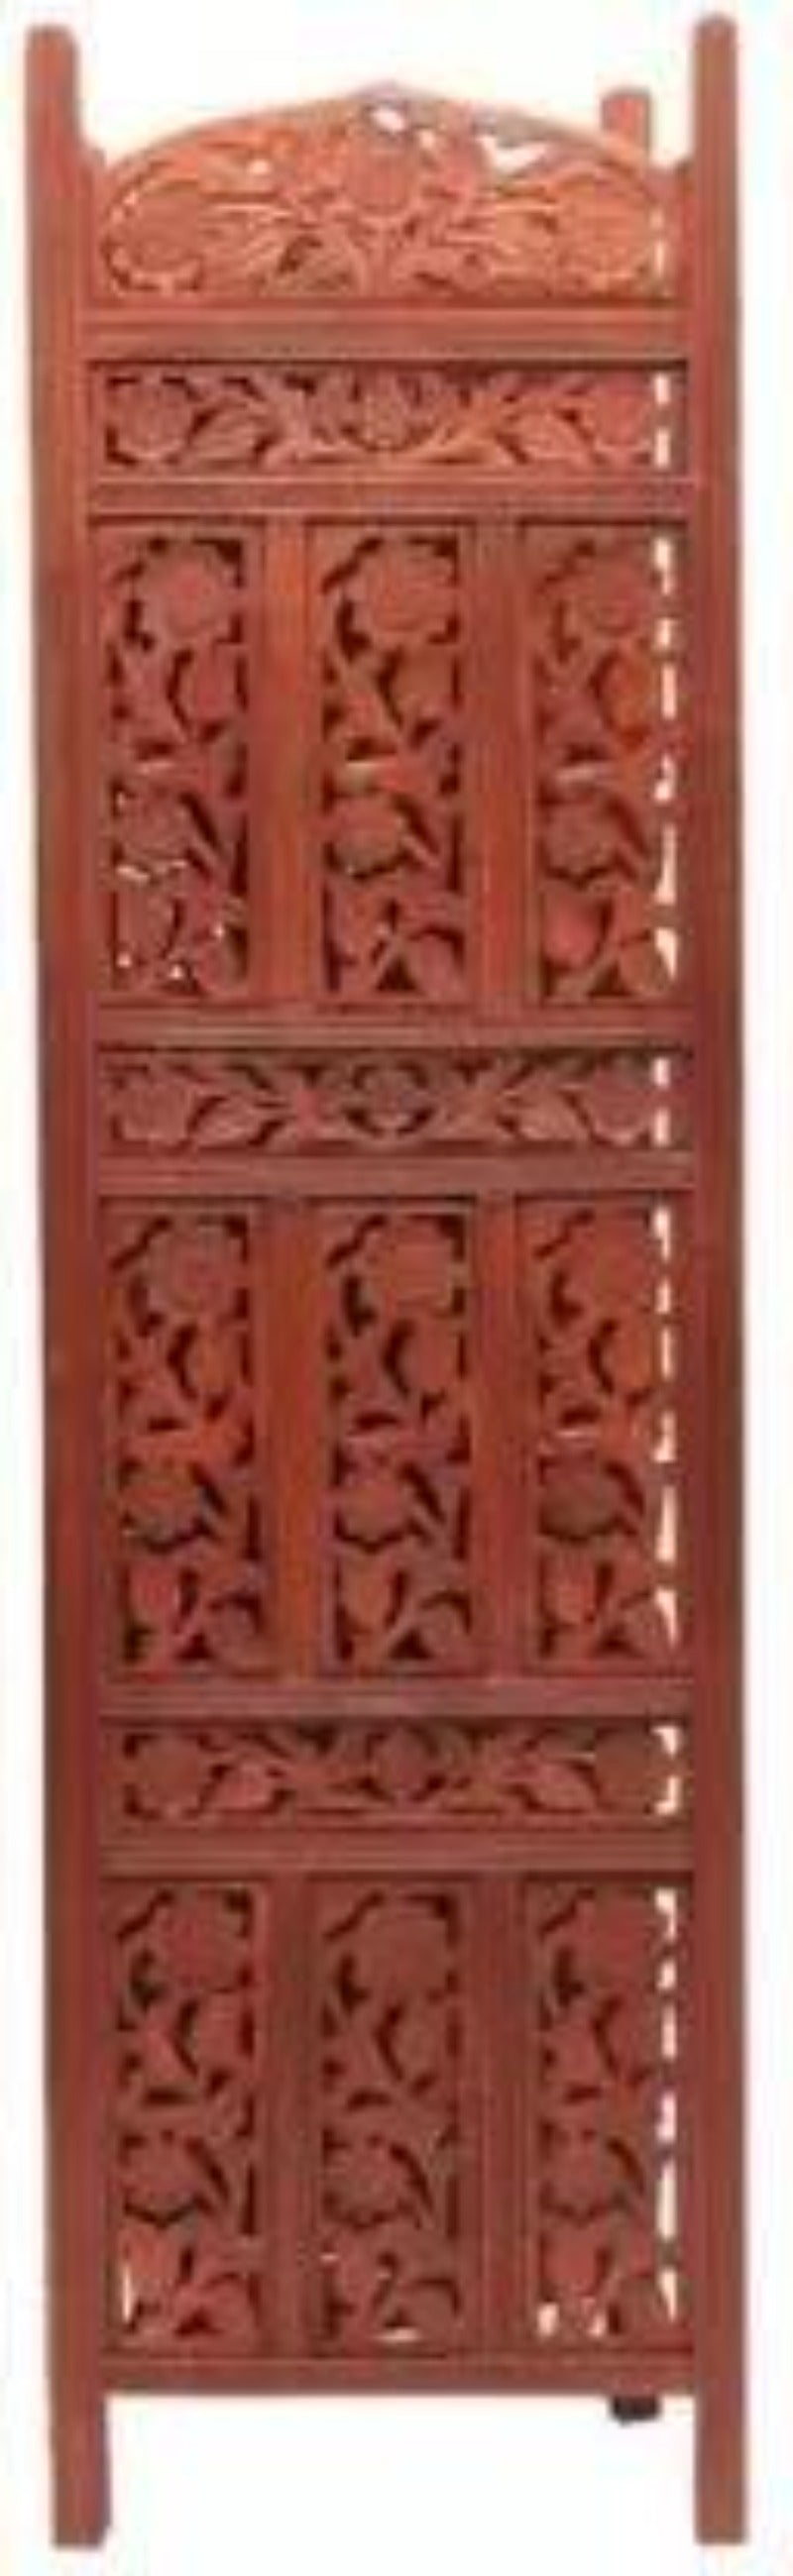 wooden decorative screen divider